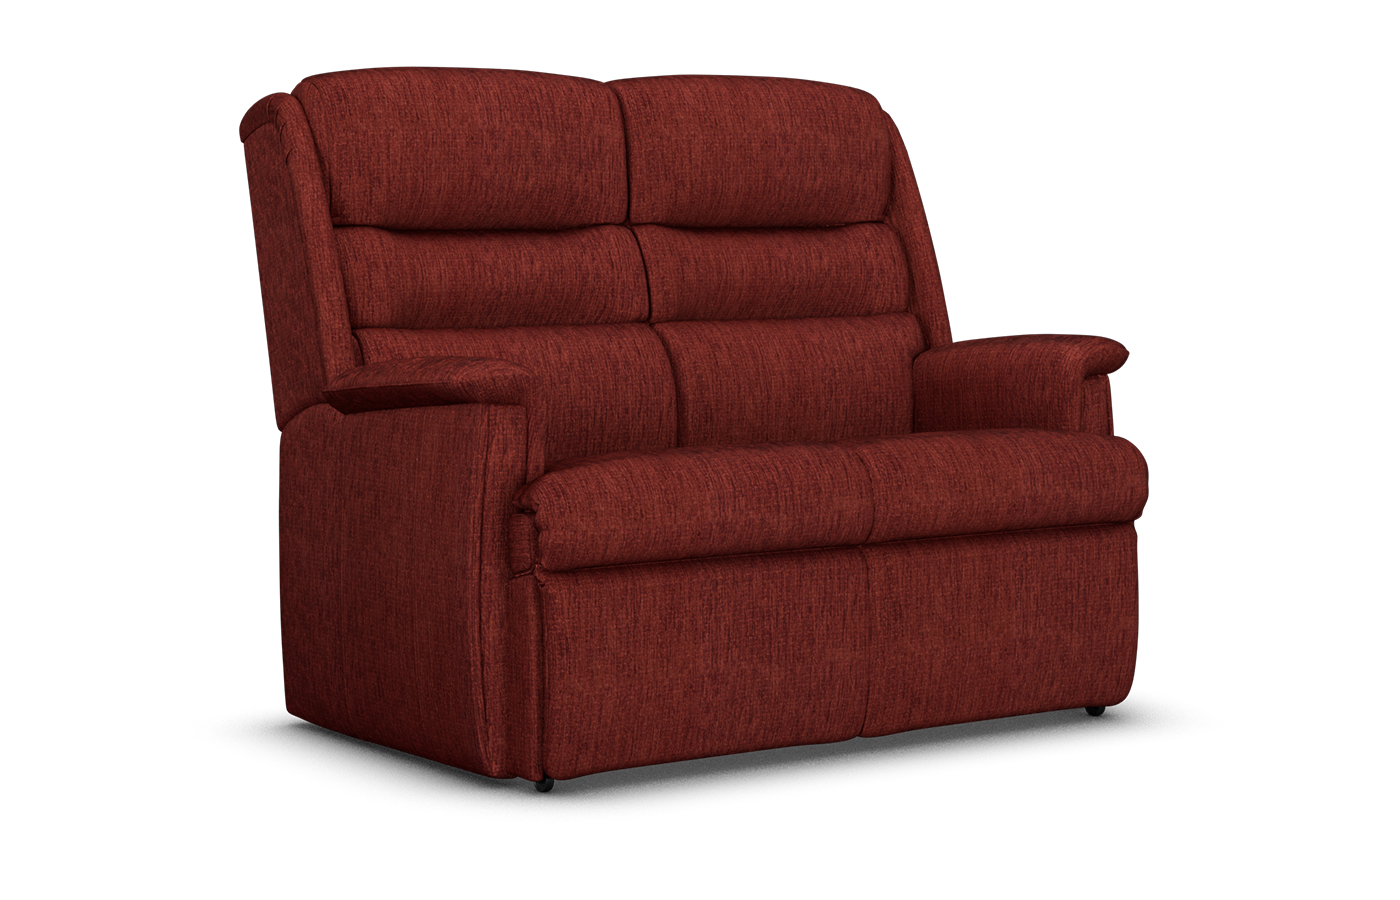 Ripley 2 Seater Power Recliner Sofa Manufactured In The